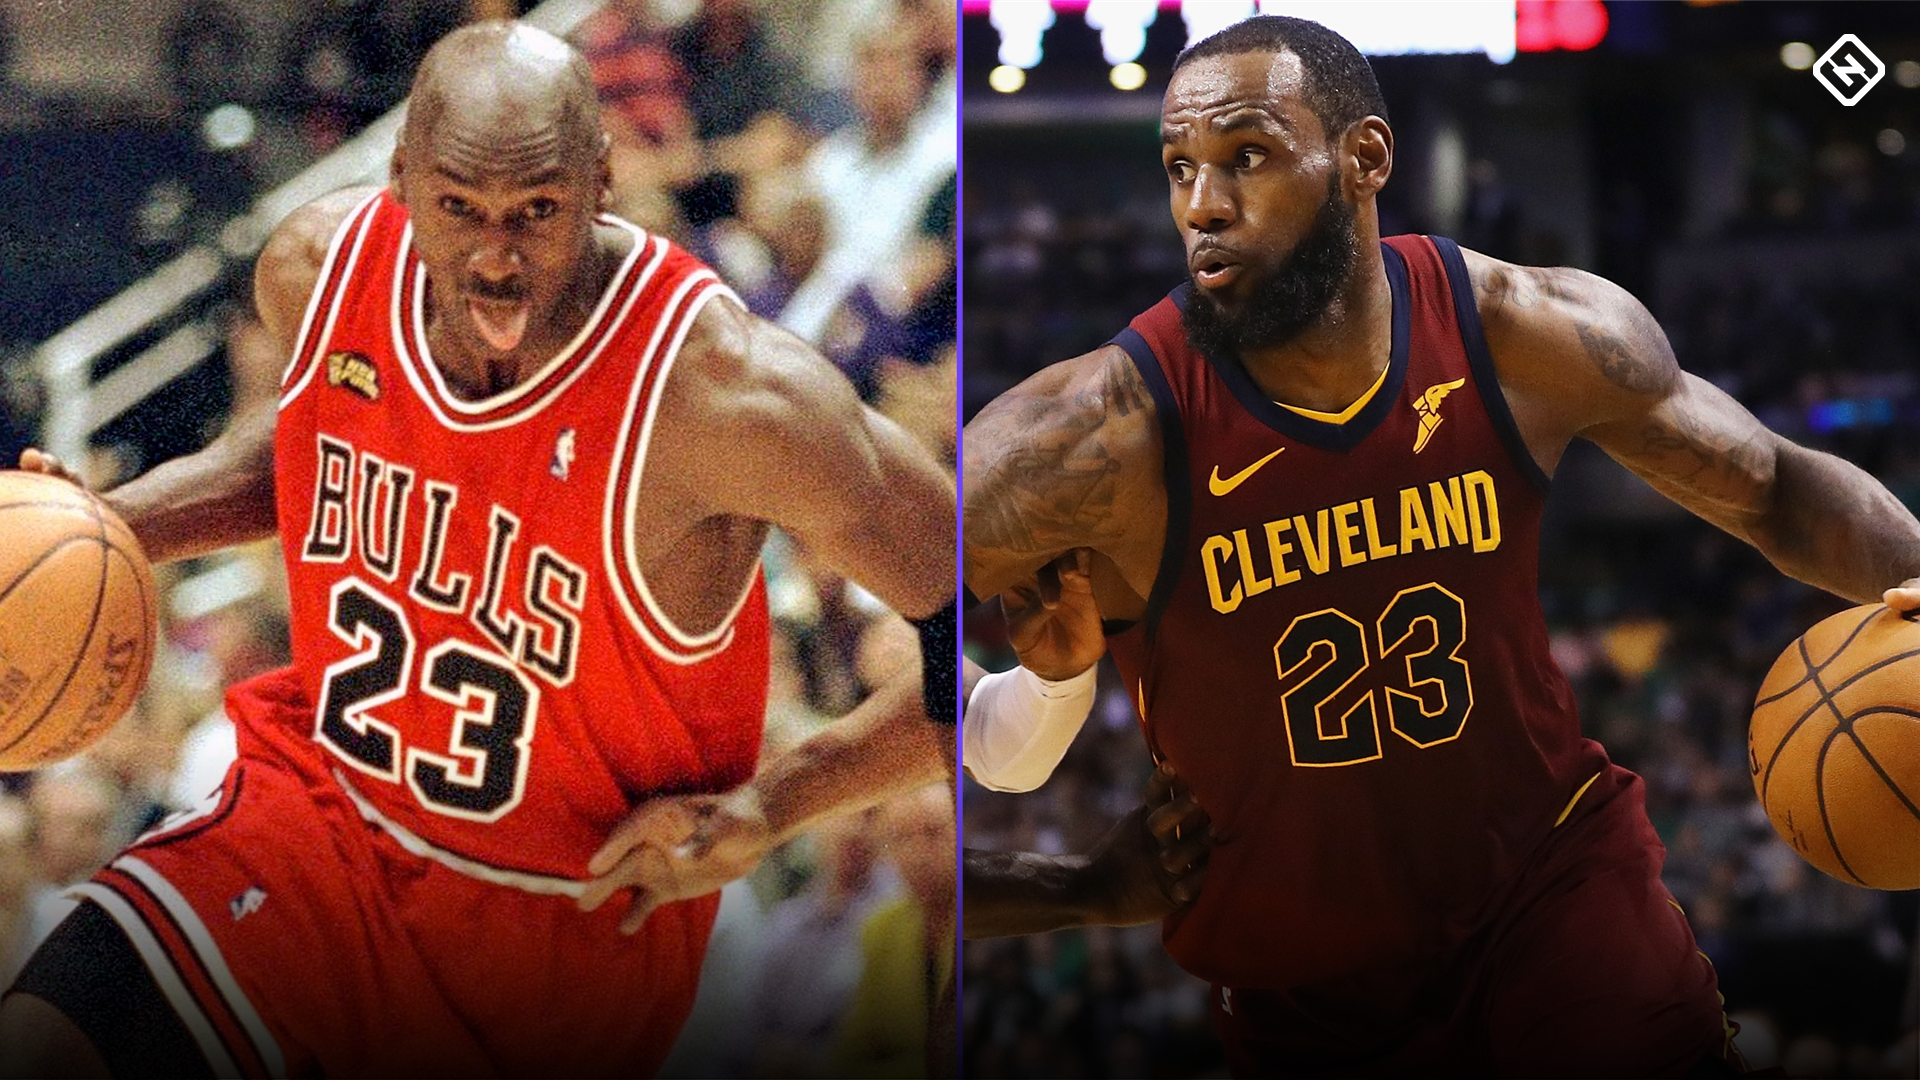 Michael Jordan vs. LeBron James: The key stats you need to know in the GOAT debate